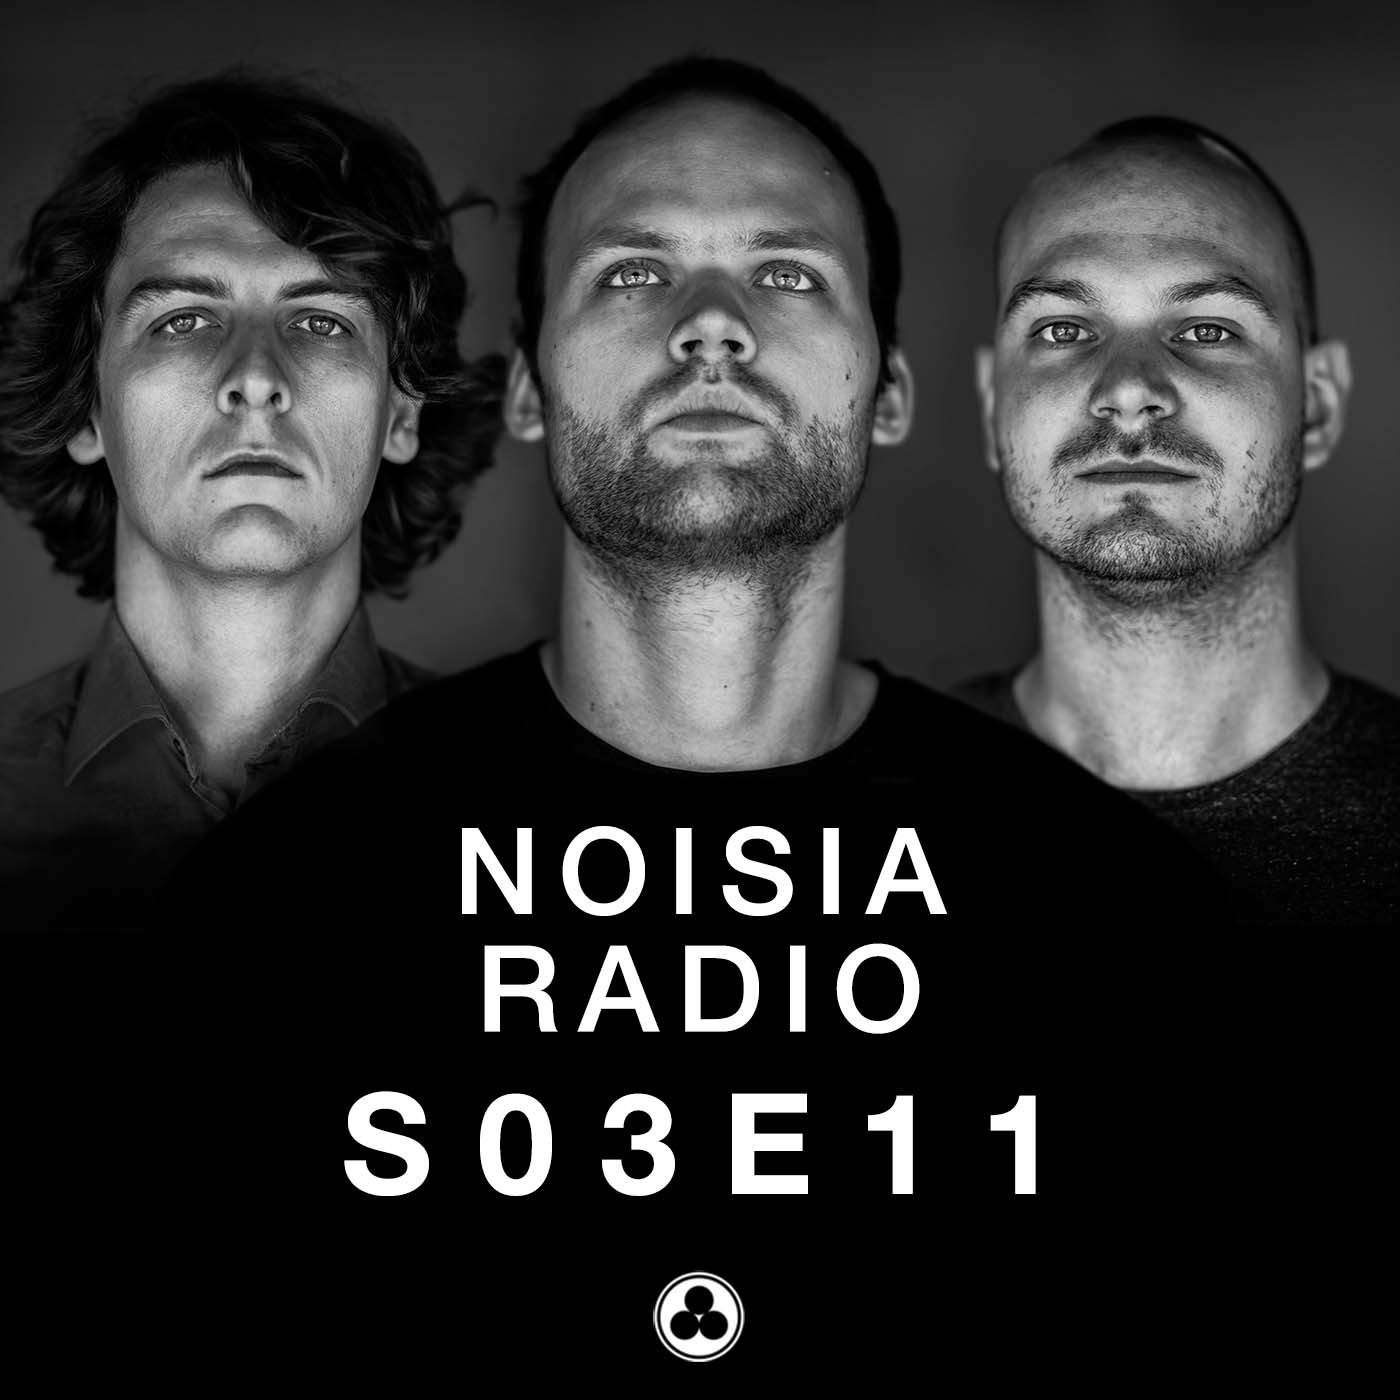 Noisia Radio S03E11